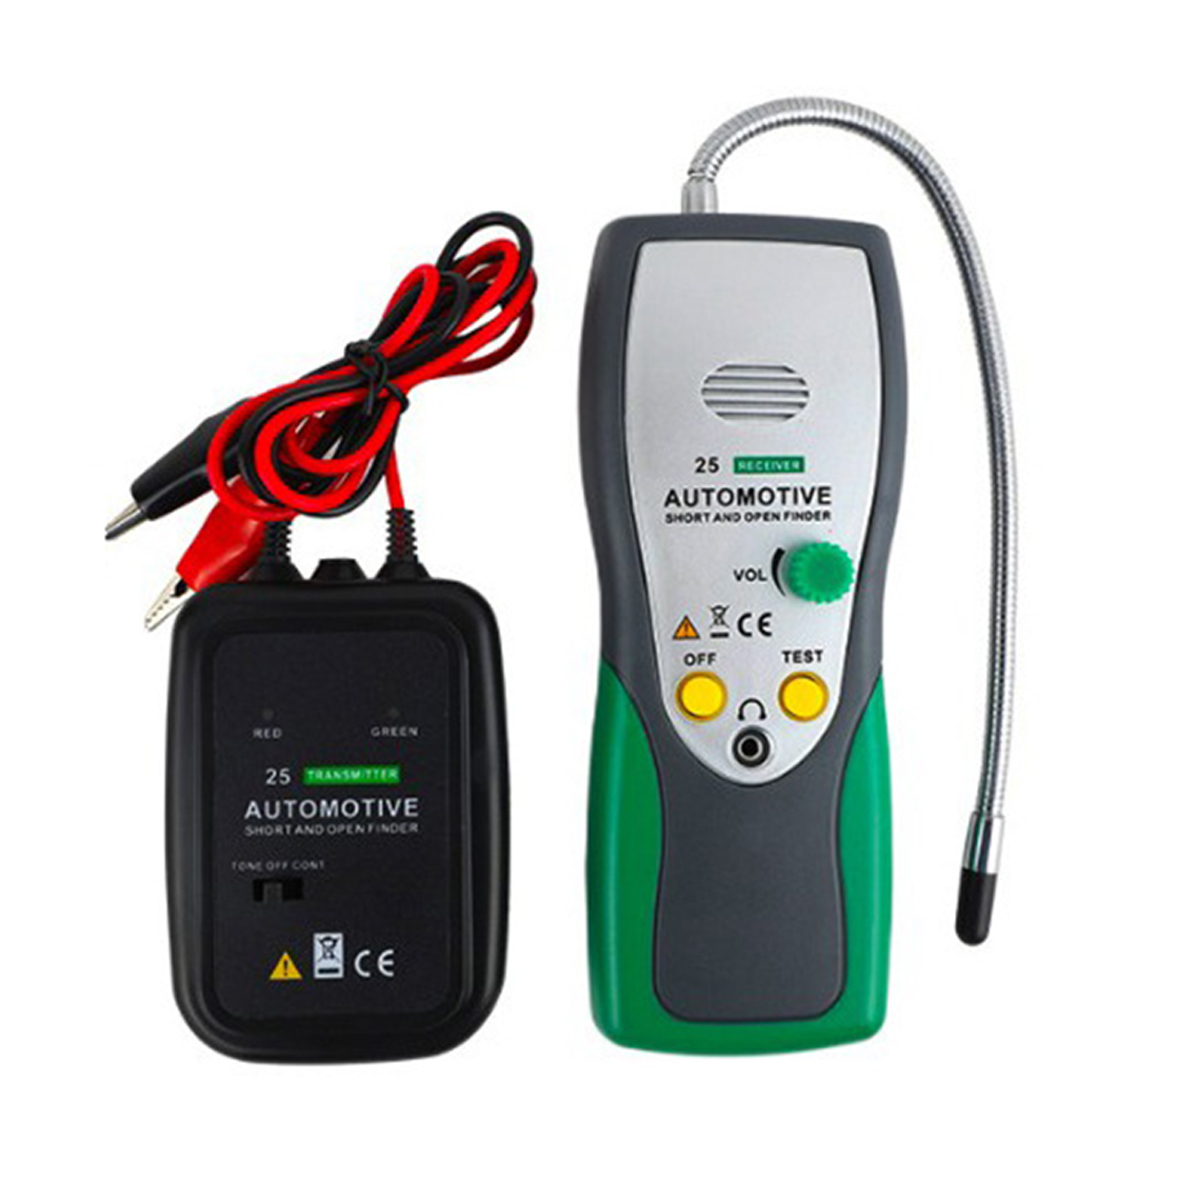 DY25 Automotive Short amp Open Circuit Finder Tester Cable Tracker Repair Tool Tester Car Tracer Diagnose Tone Line Finder  Wires